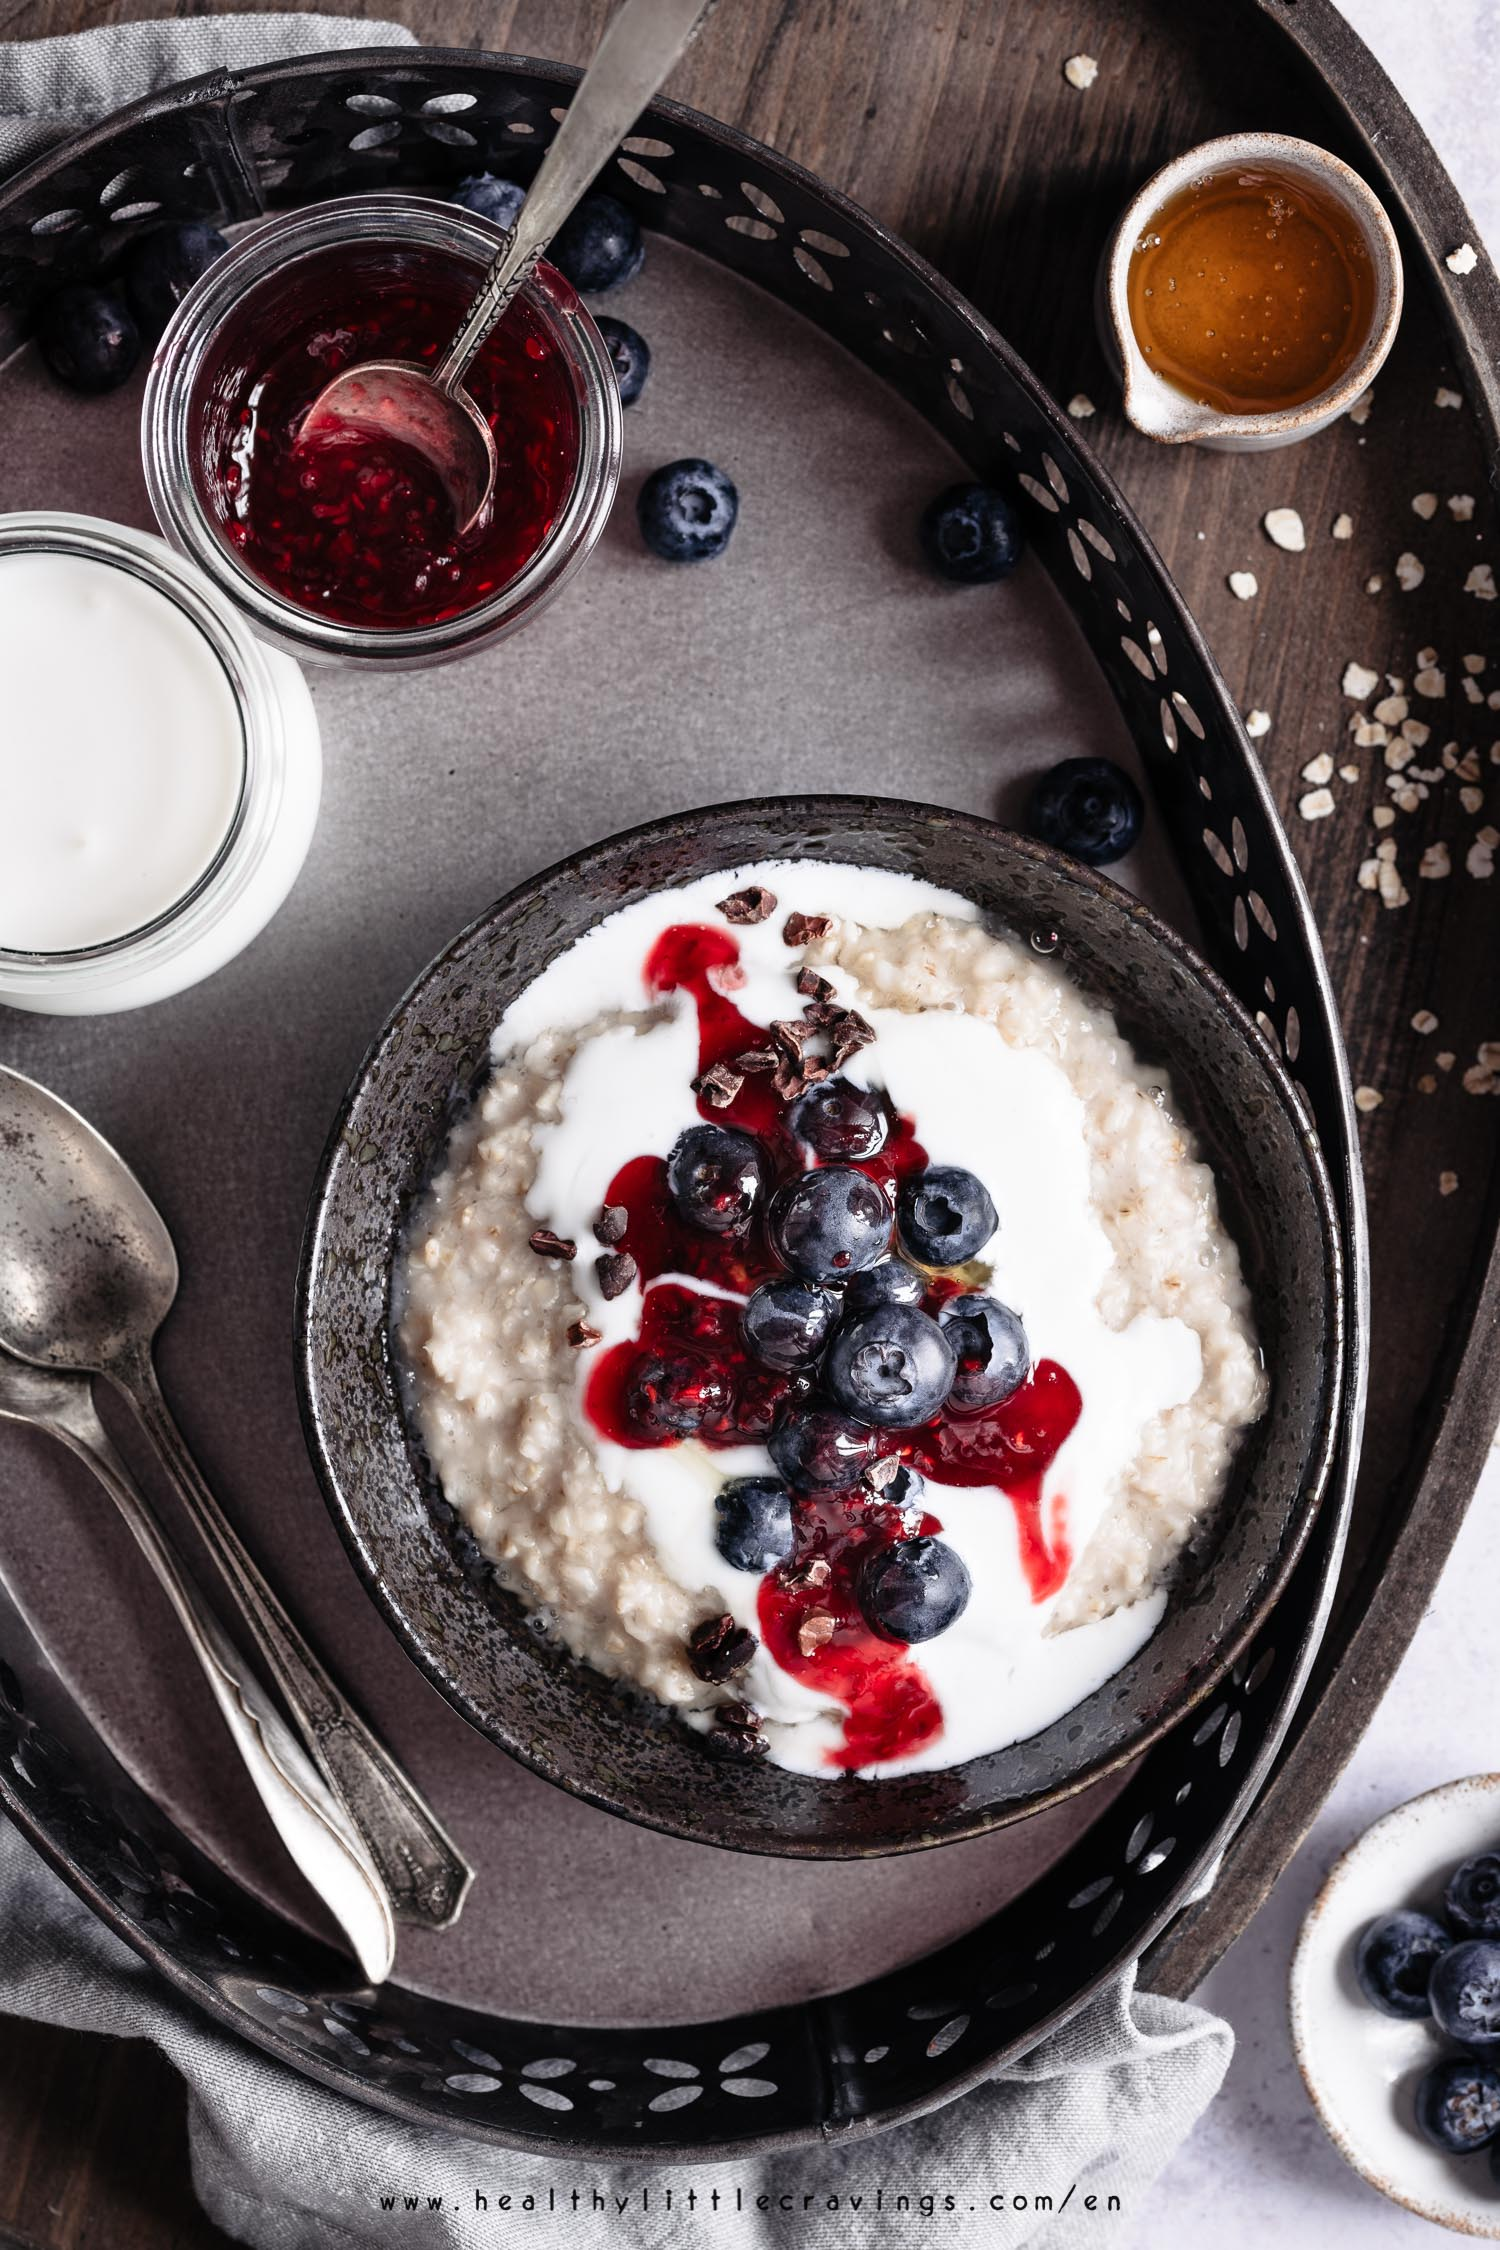 Learn how to cook oatmeal on the stovetop